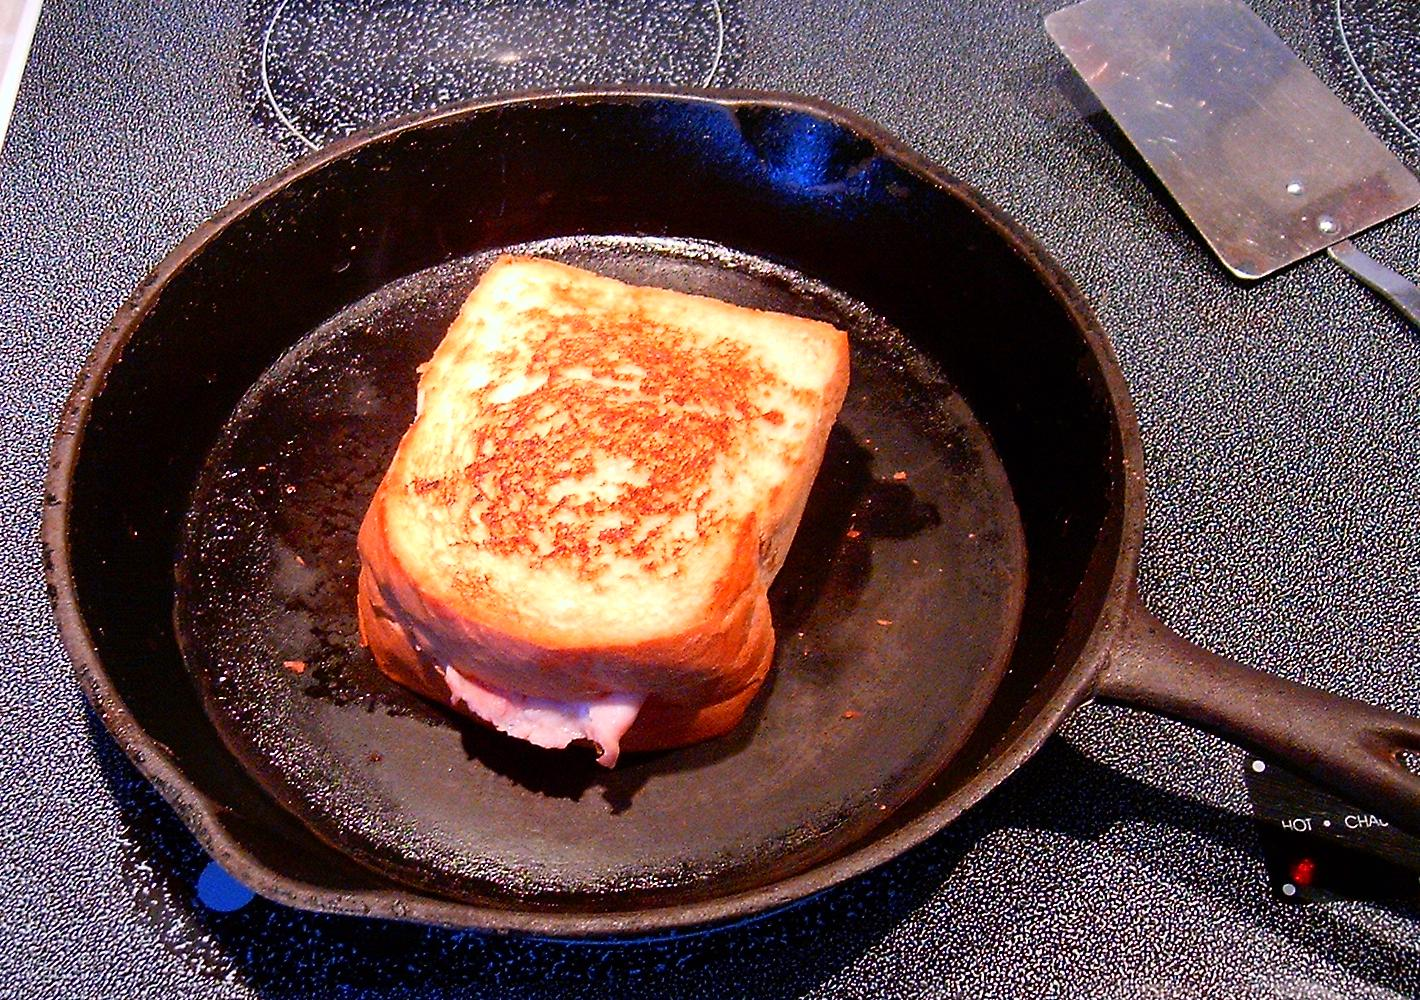 File:Grilled ham and cheese 014.JPG - Wikipedia, the free encyclopedia